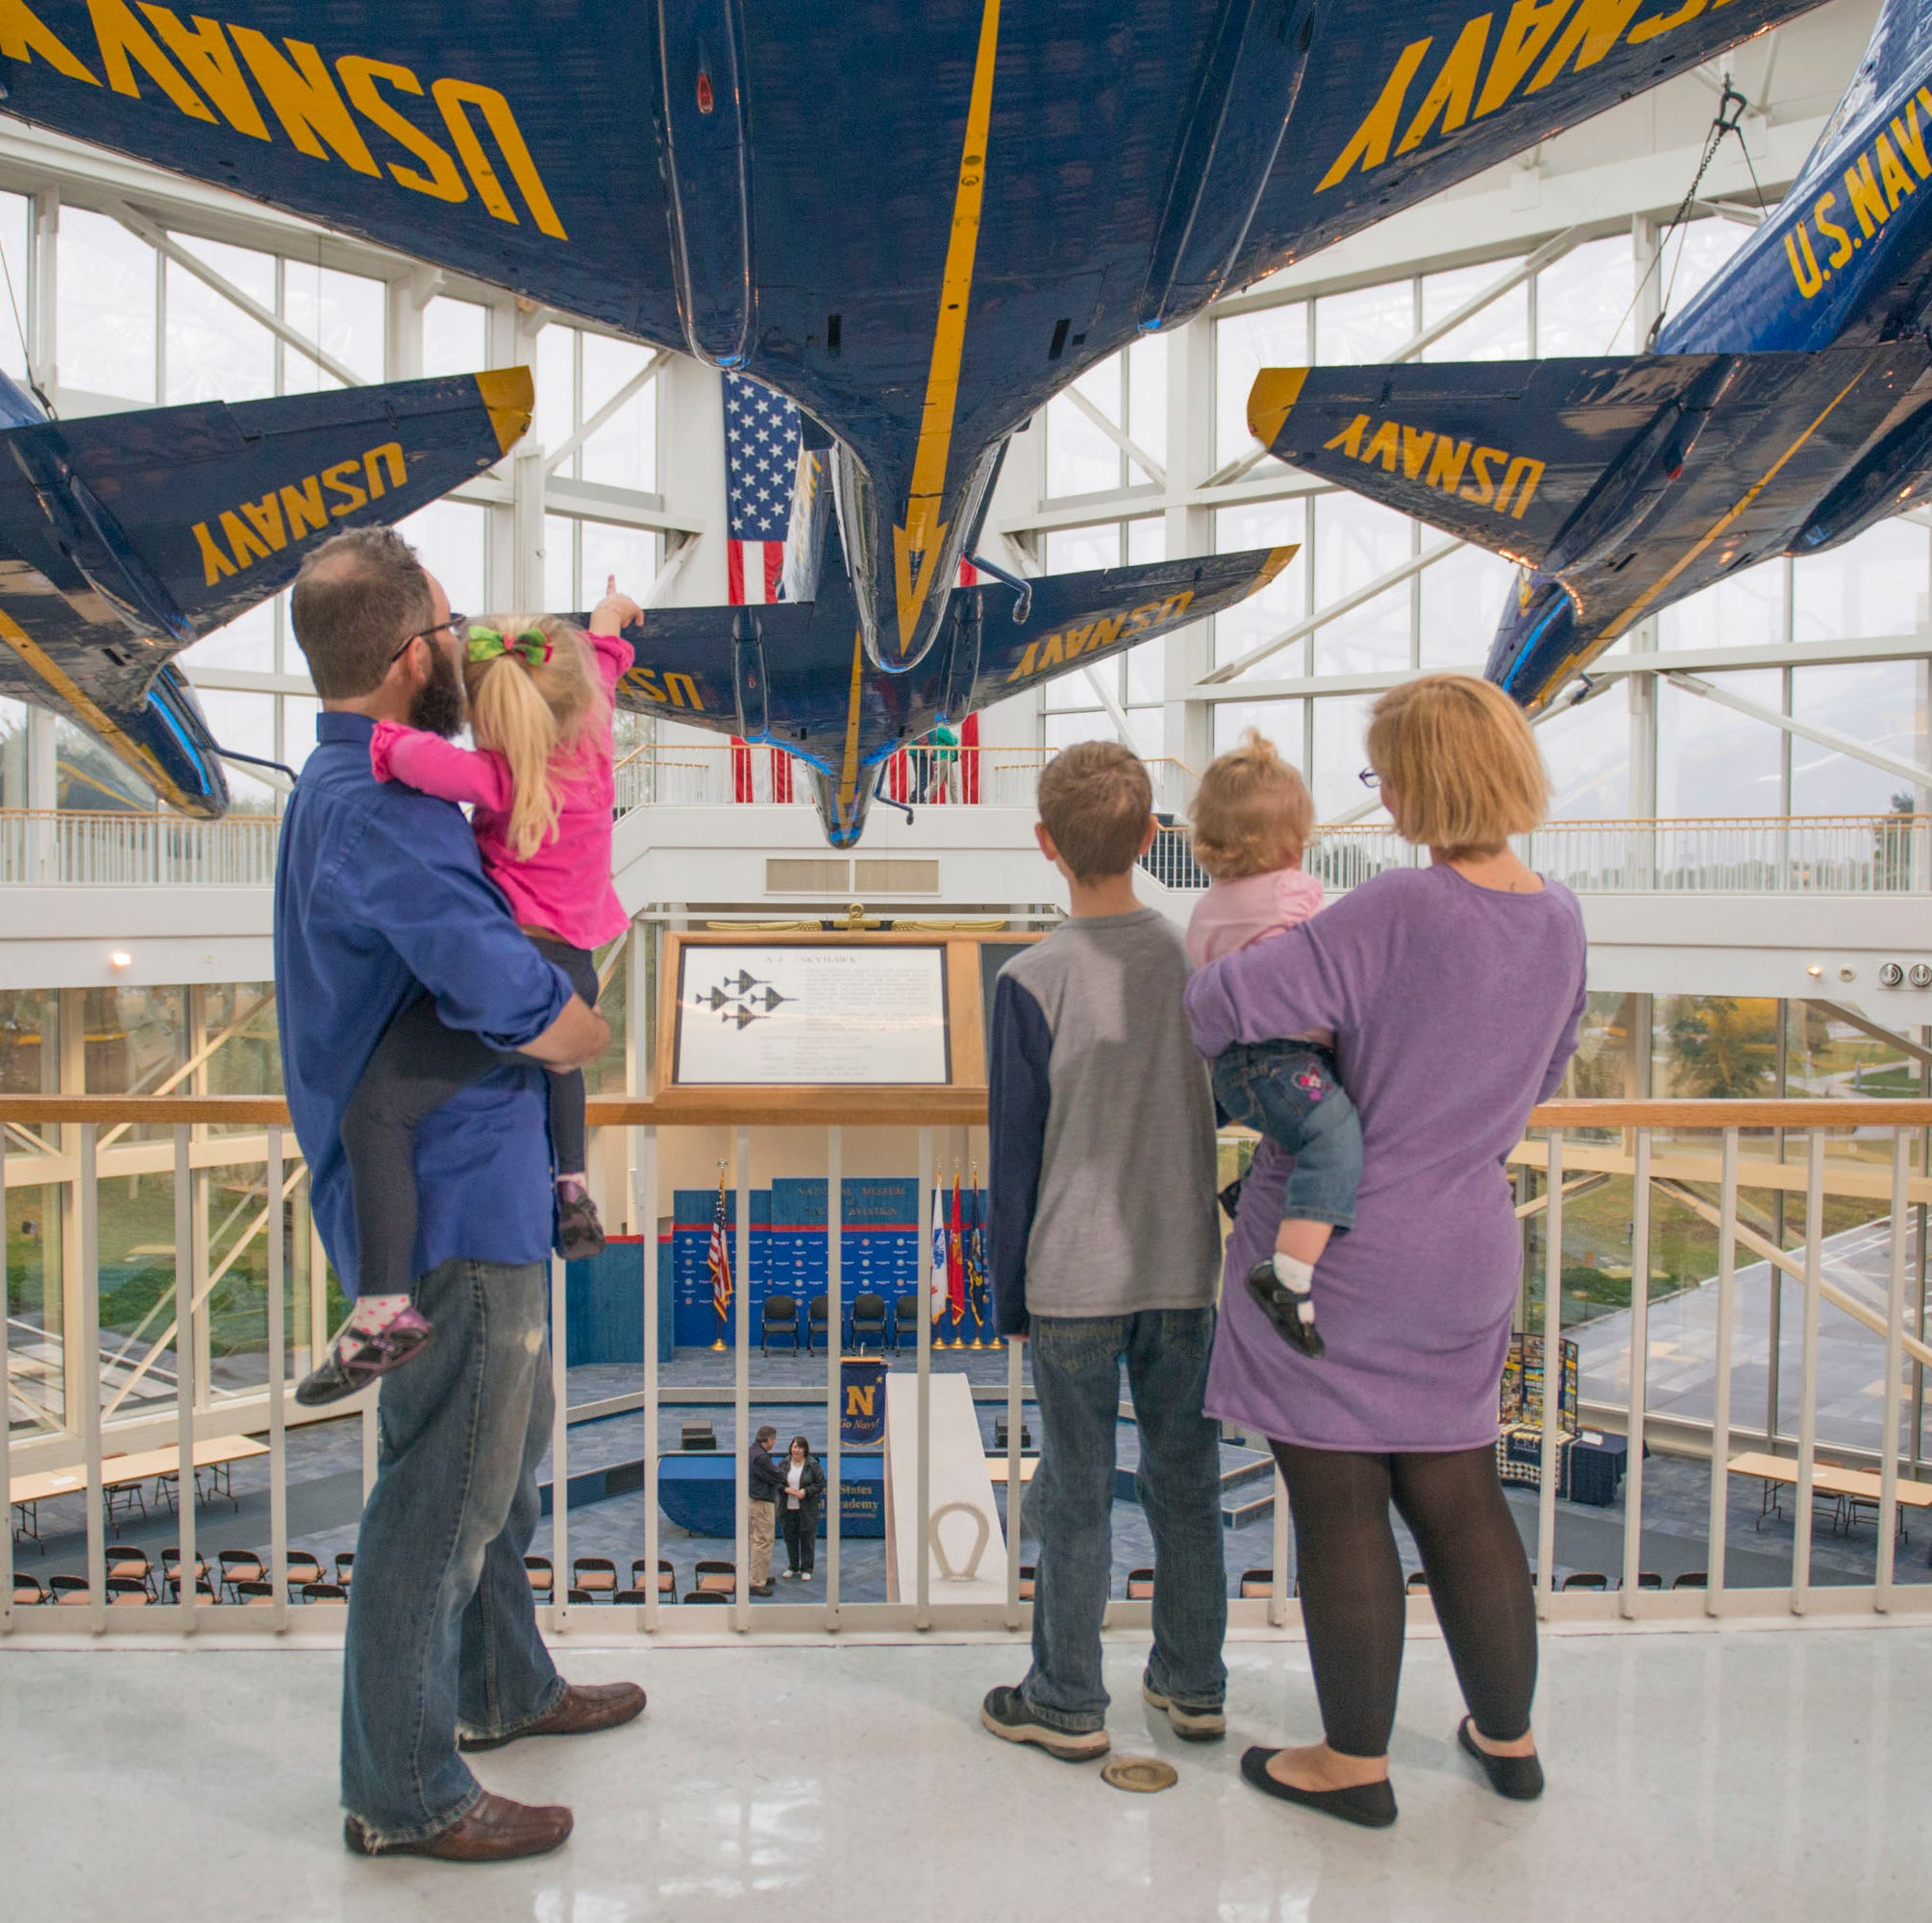 TripAdvisor names National Naval Aviation Museum in top 25 list among Smithsonian